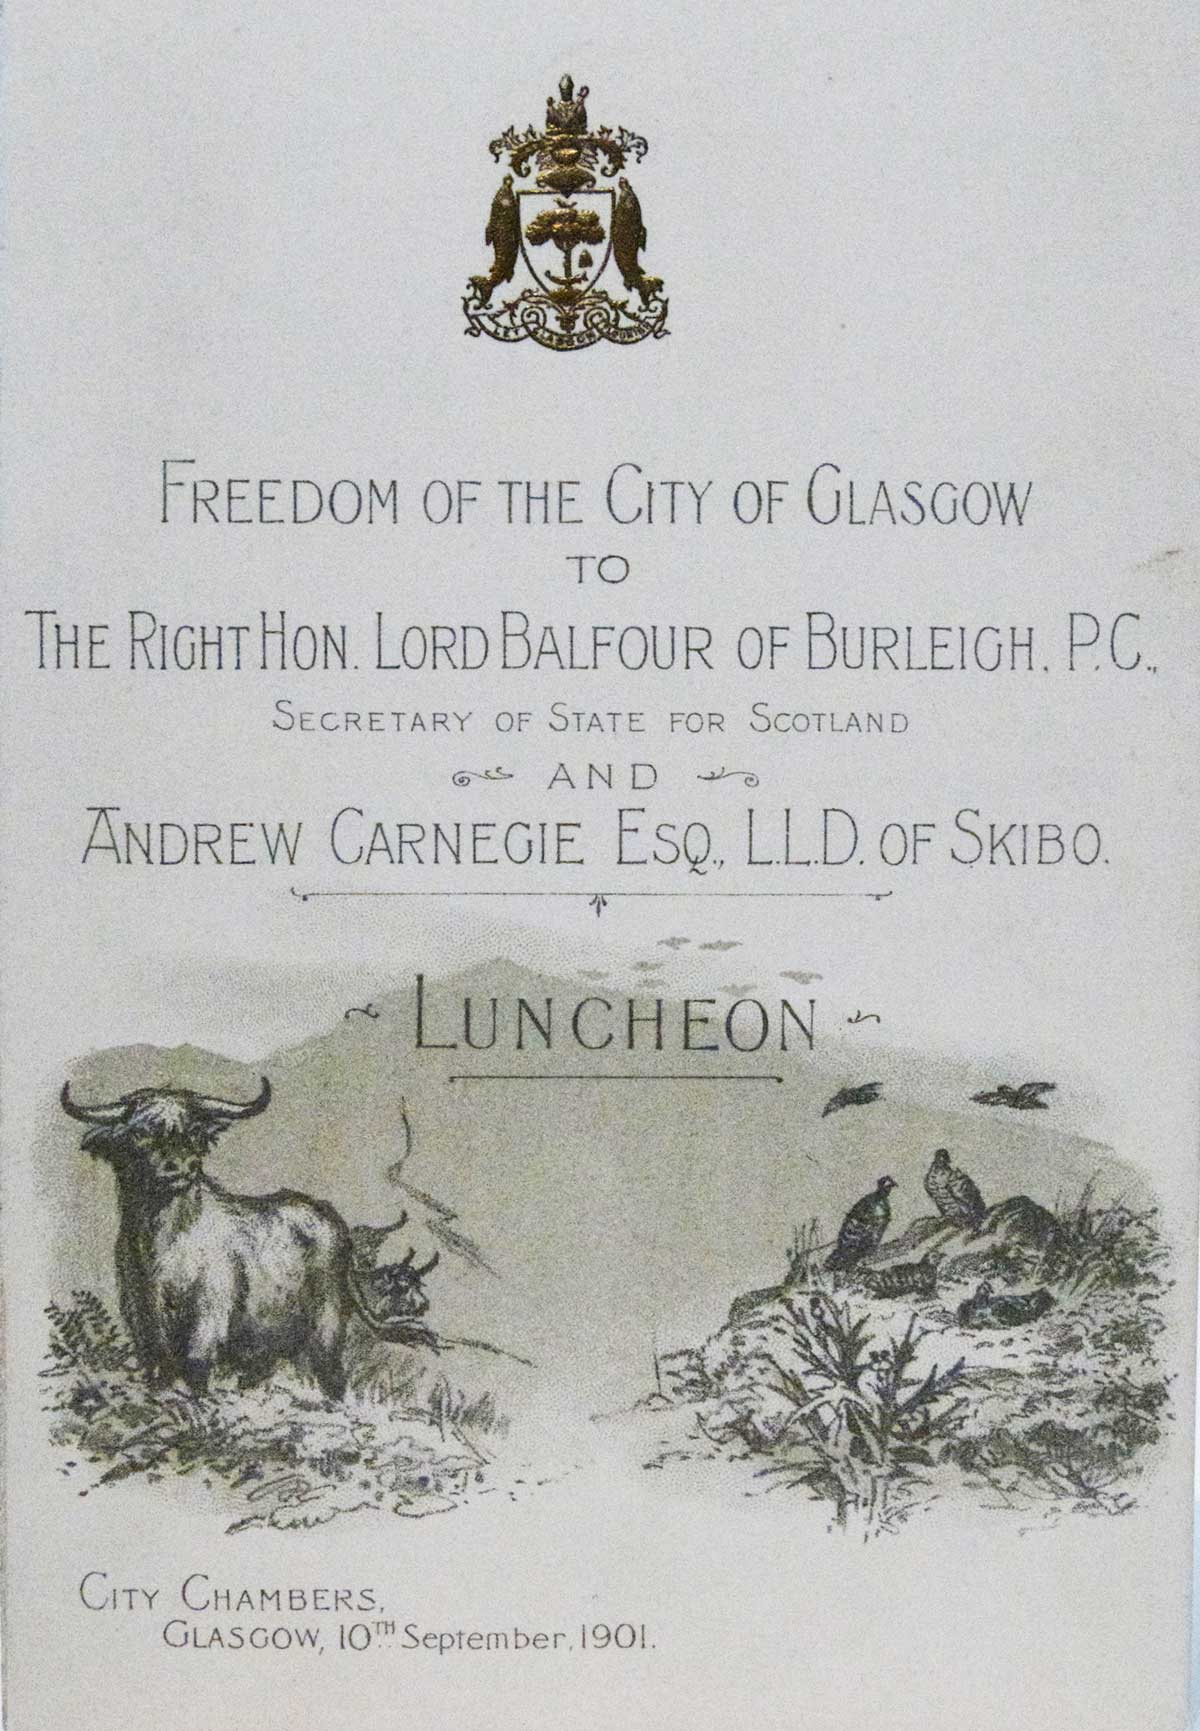 glasgow-menu_opt.jpg